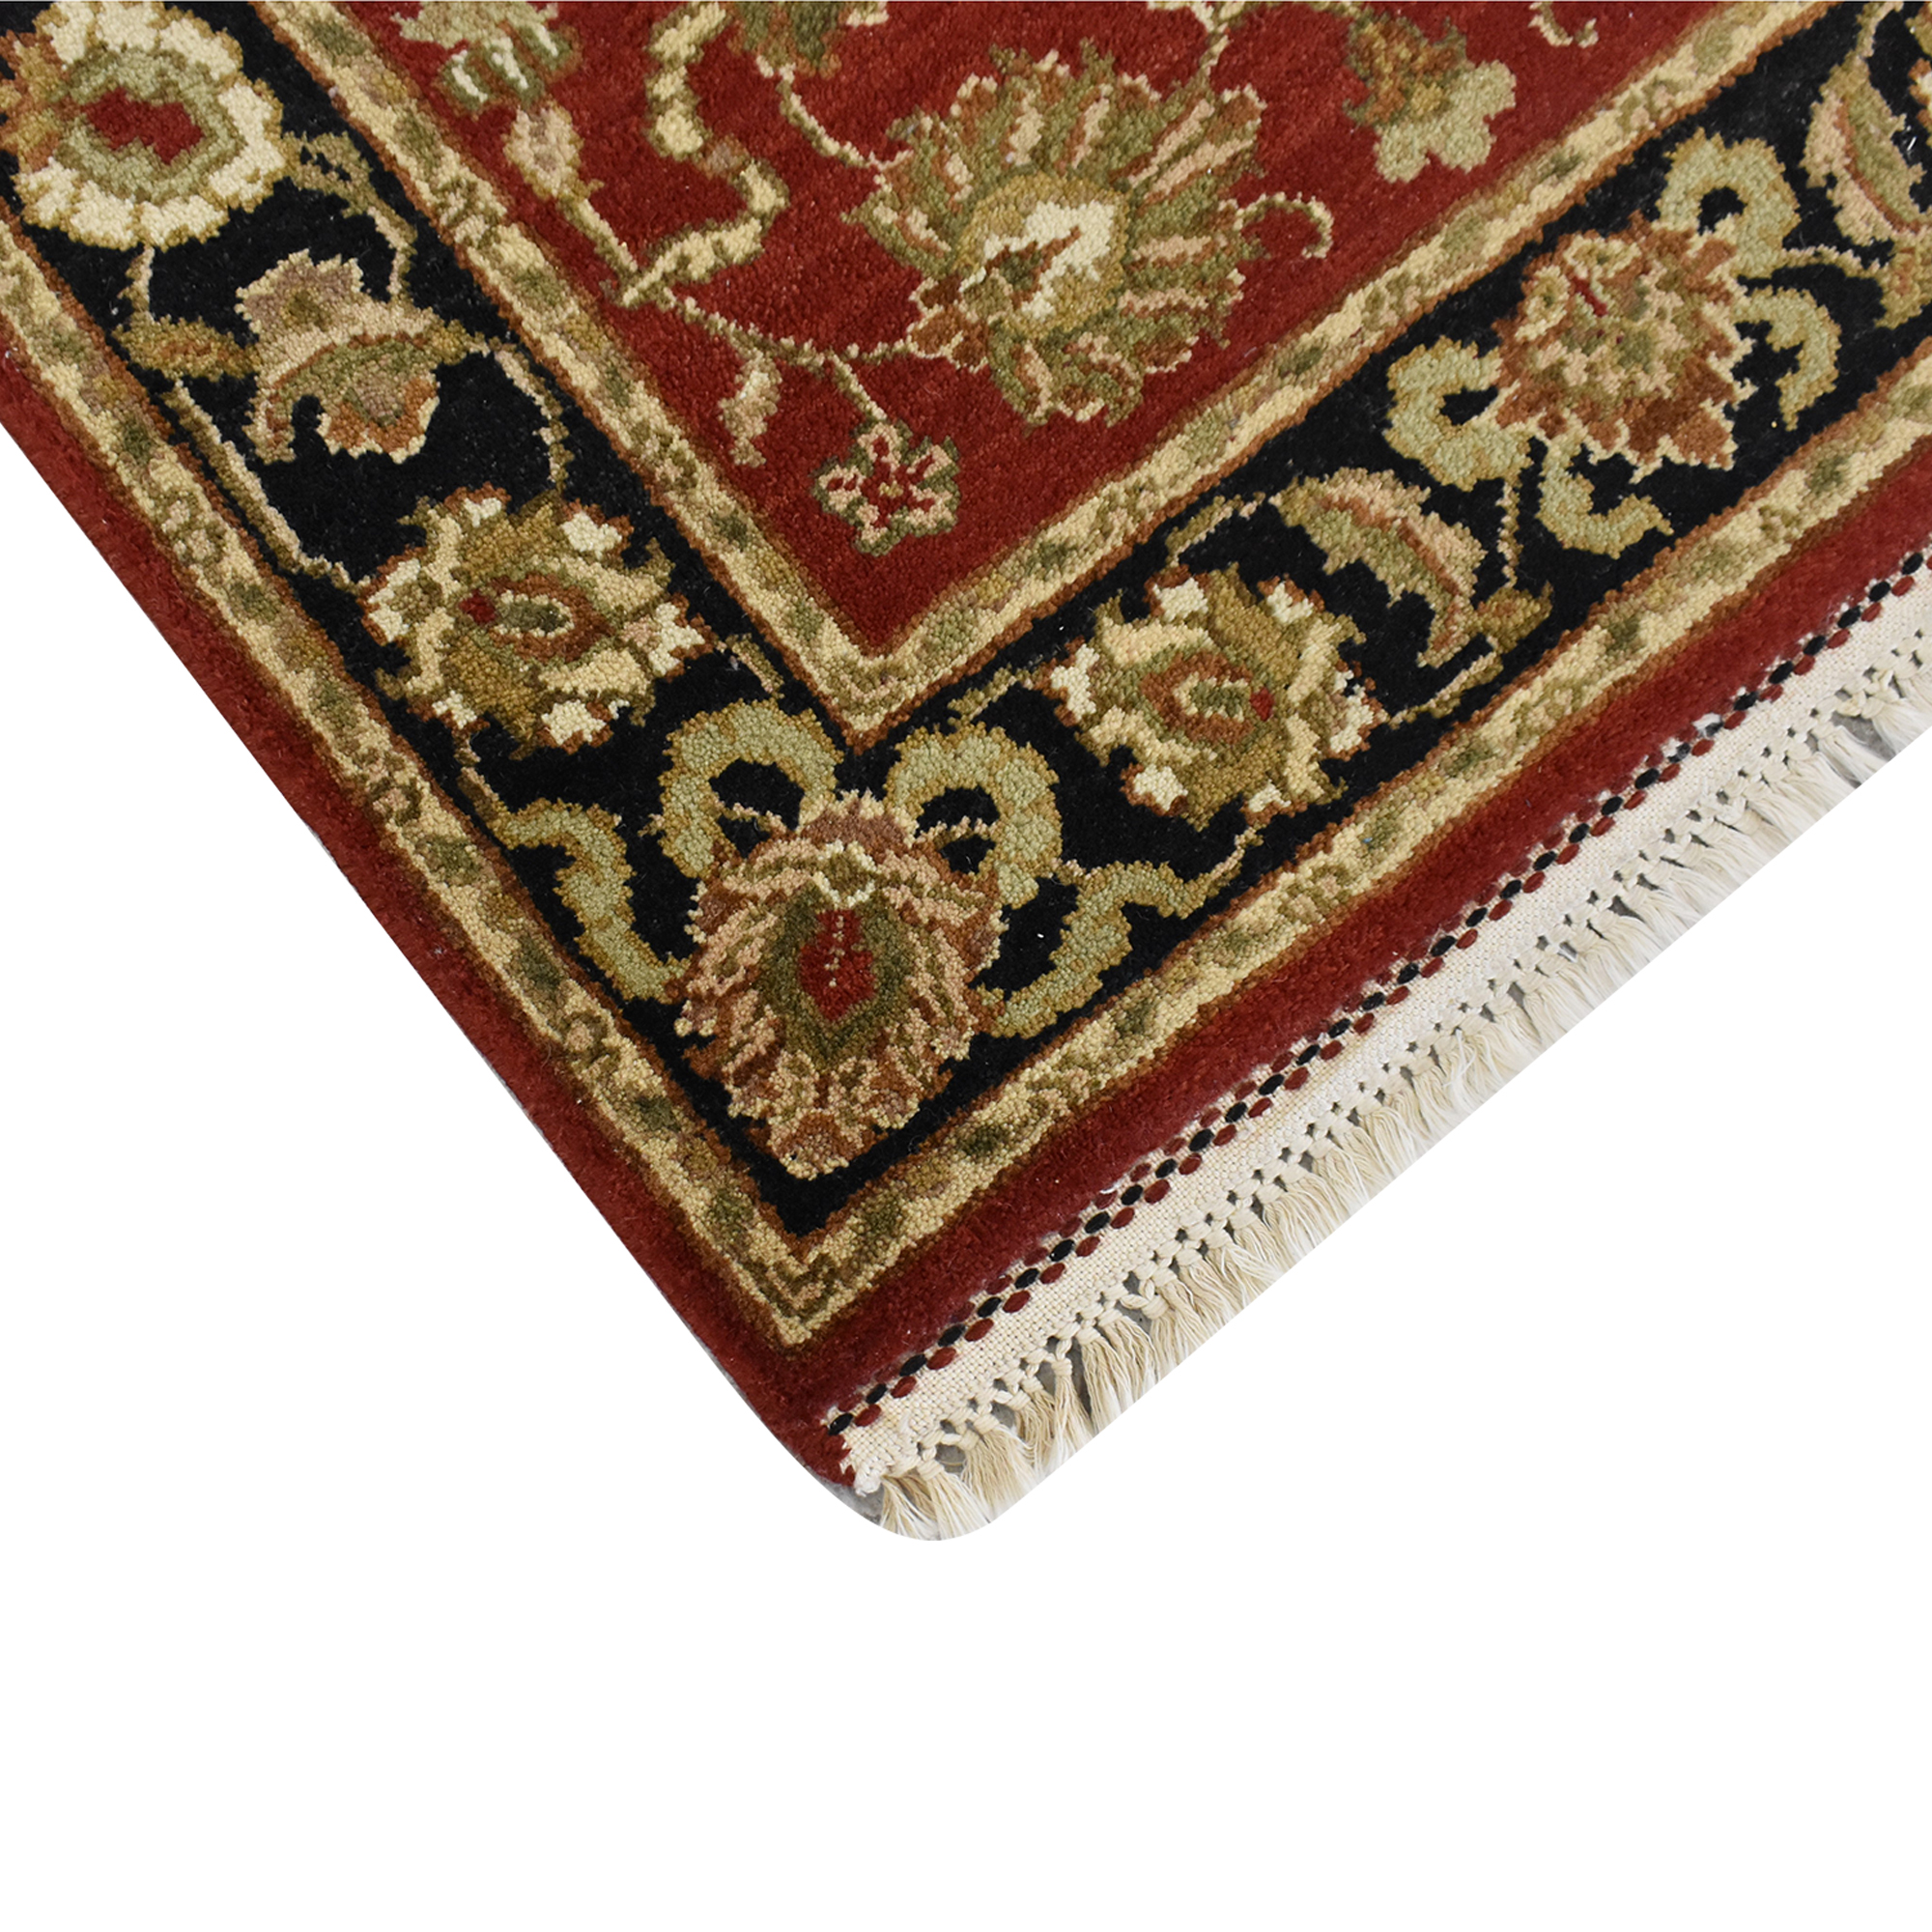 Home Decorators Collection Home Decorators Collection Santana Runner used